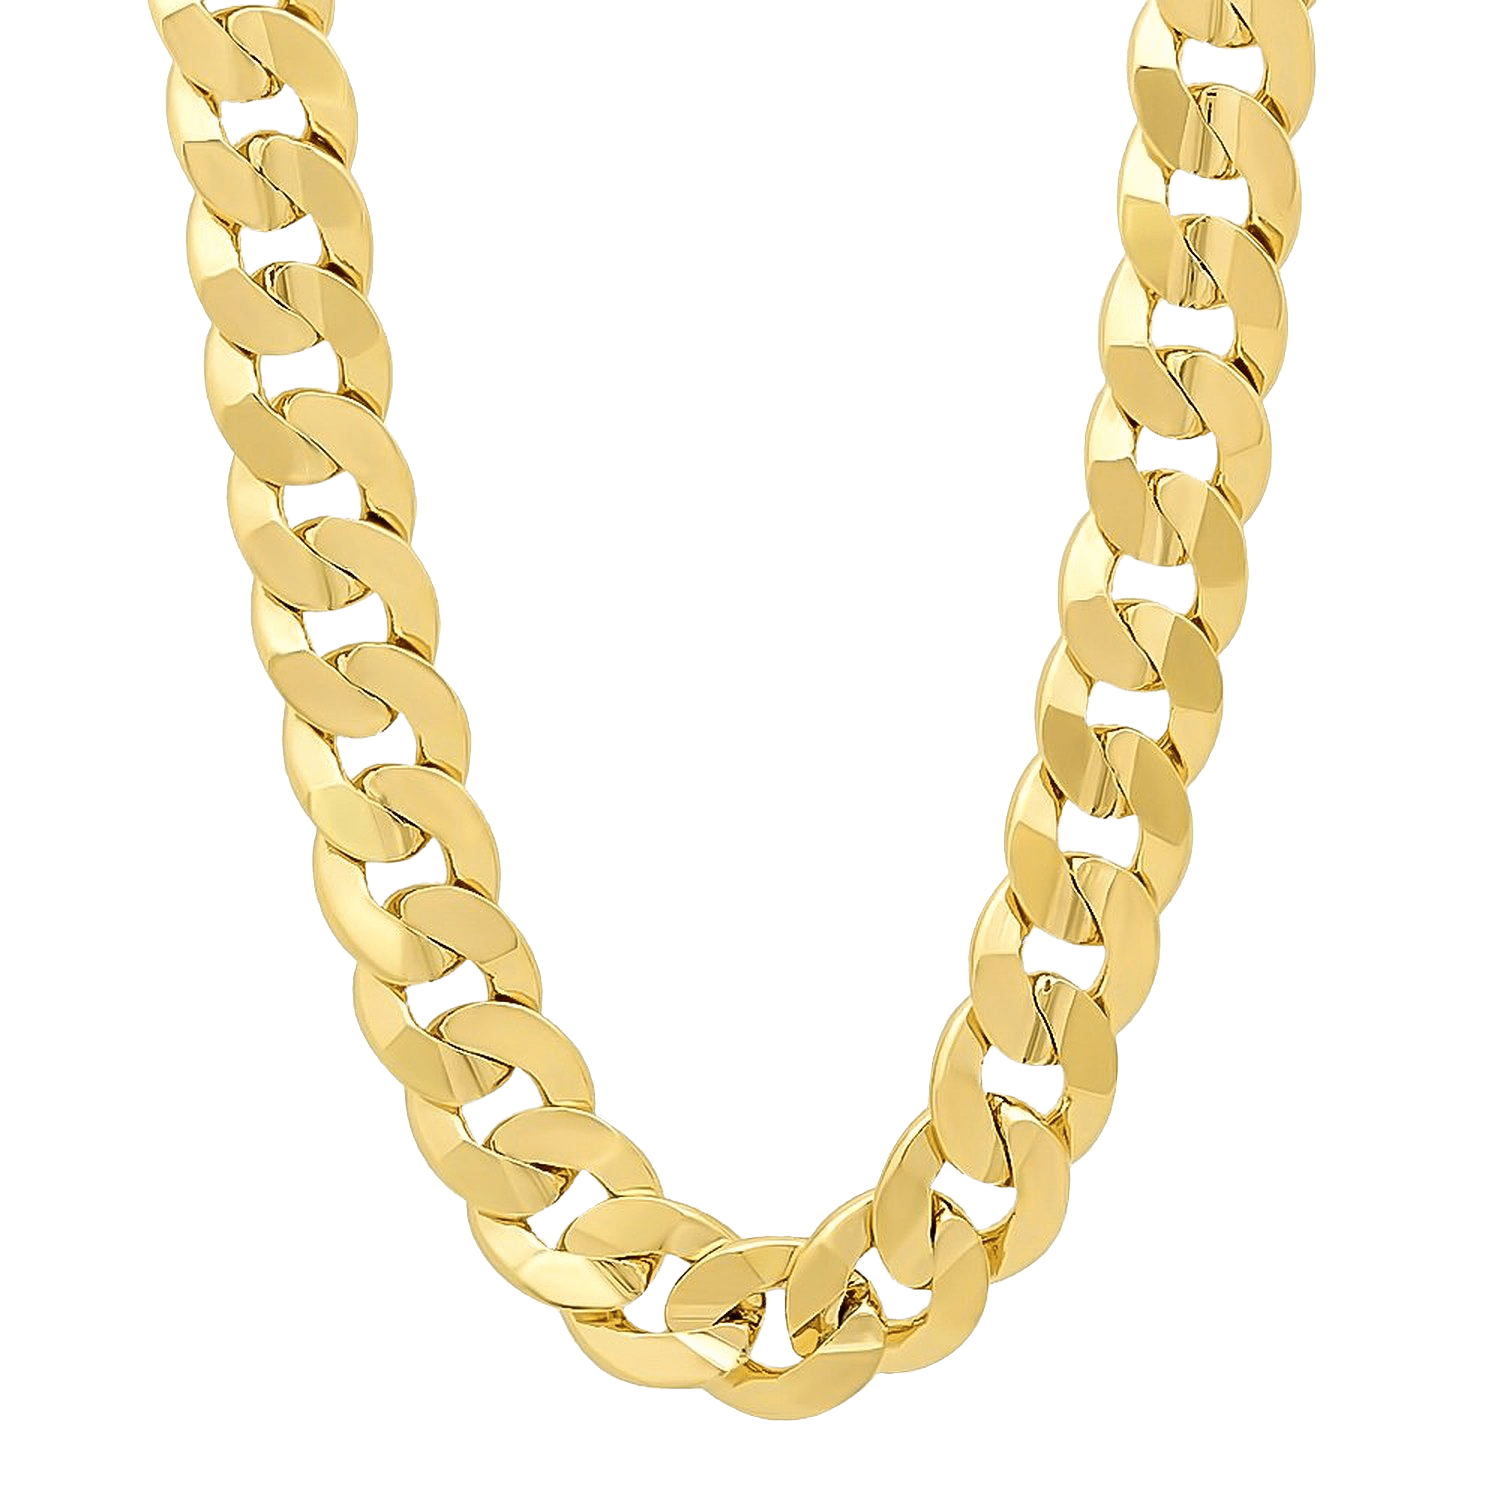 Gold chain clipart transparent picture freeuse download Thug Life Heavy Gold Chain transparent PNG - StickPNG picture freeuse download